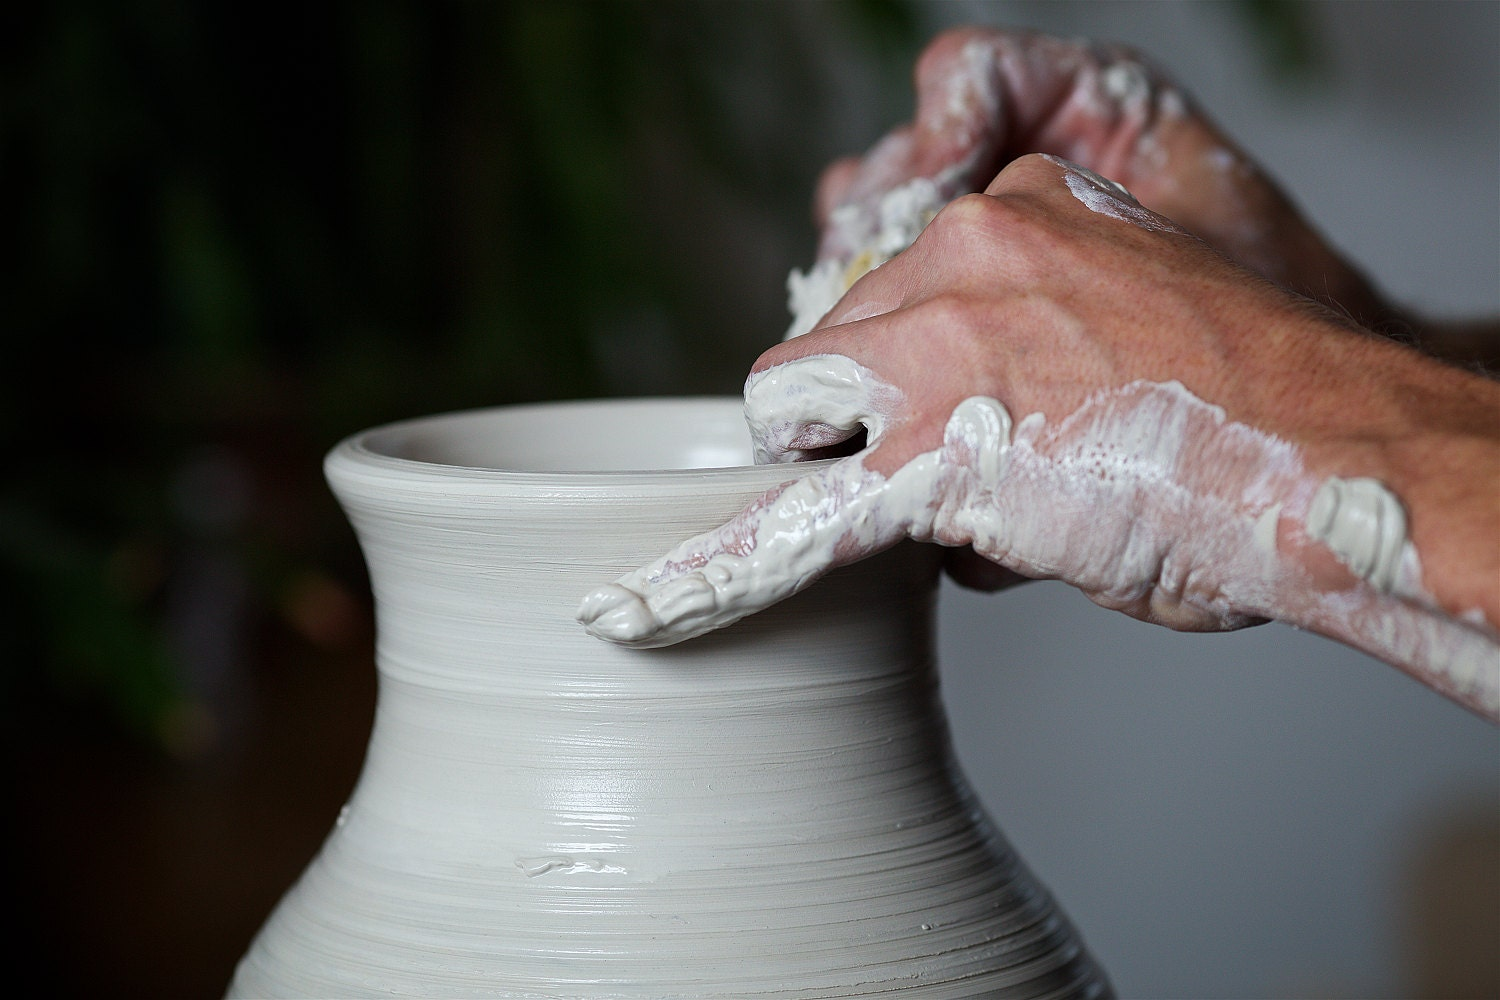 Wheelthrowing pottery